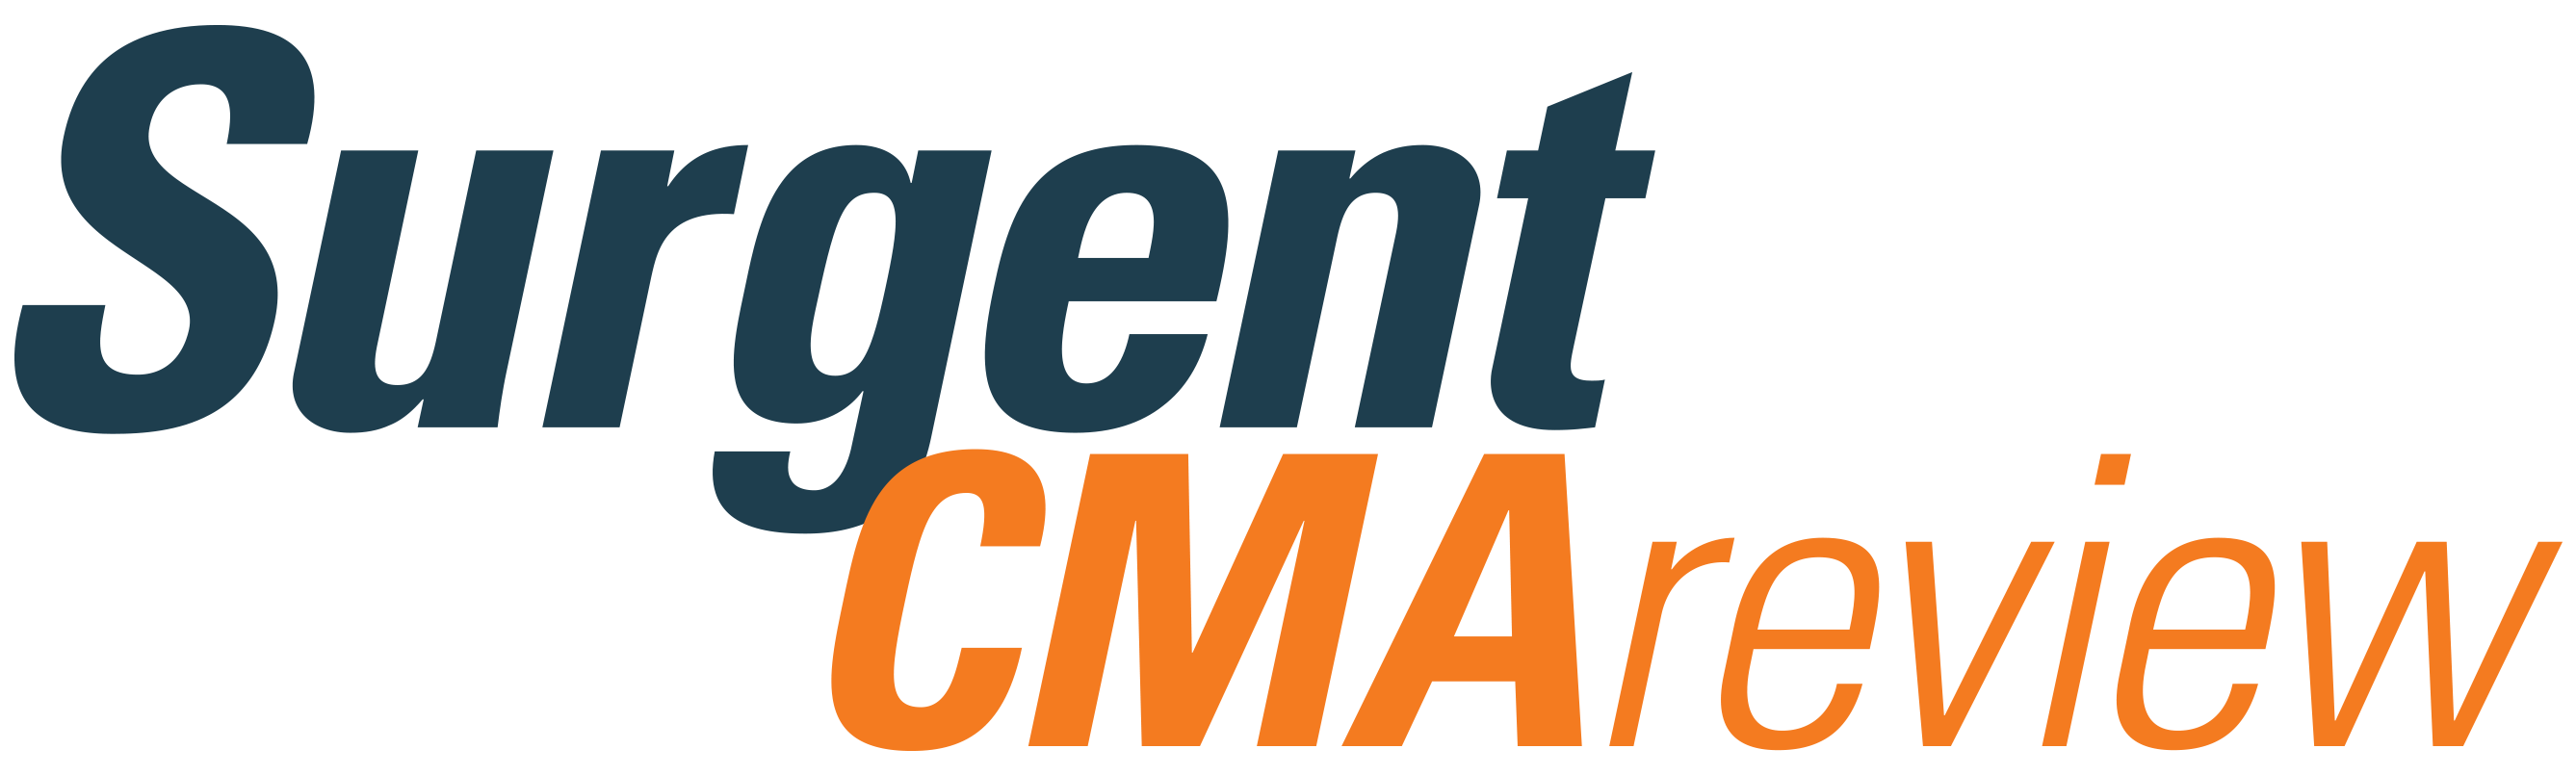 surgent cma review discount